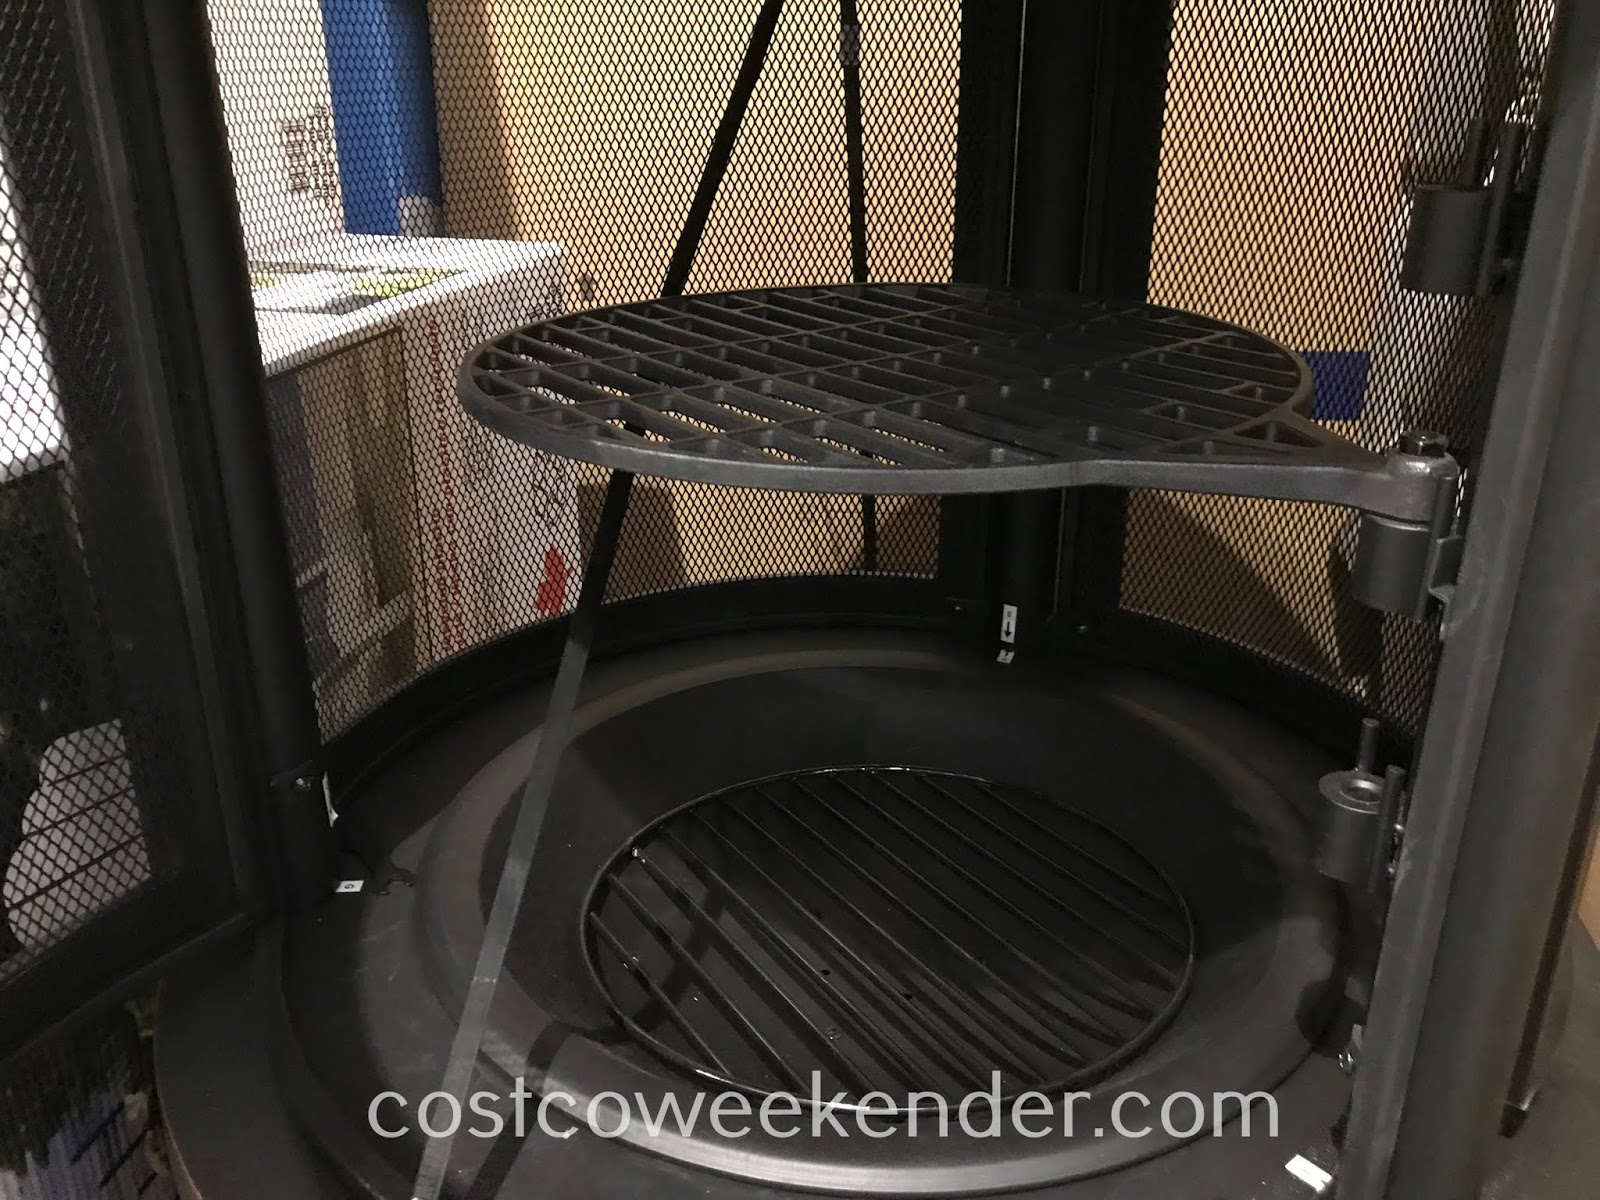 Costco 1900726 - The Hello Outdoors Outdoor Cooking Pit can be provide warmth and a surface to cook on in your backyard